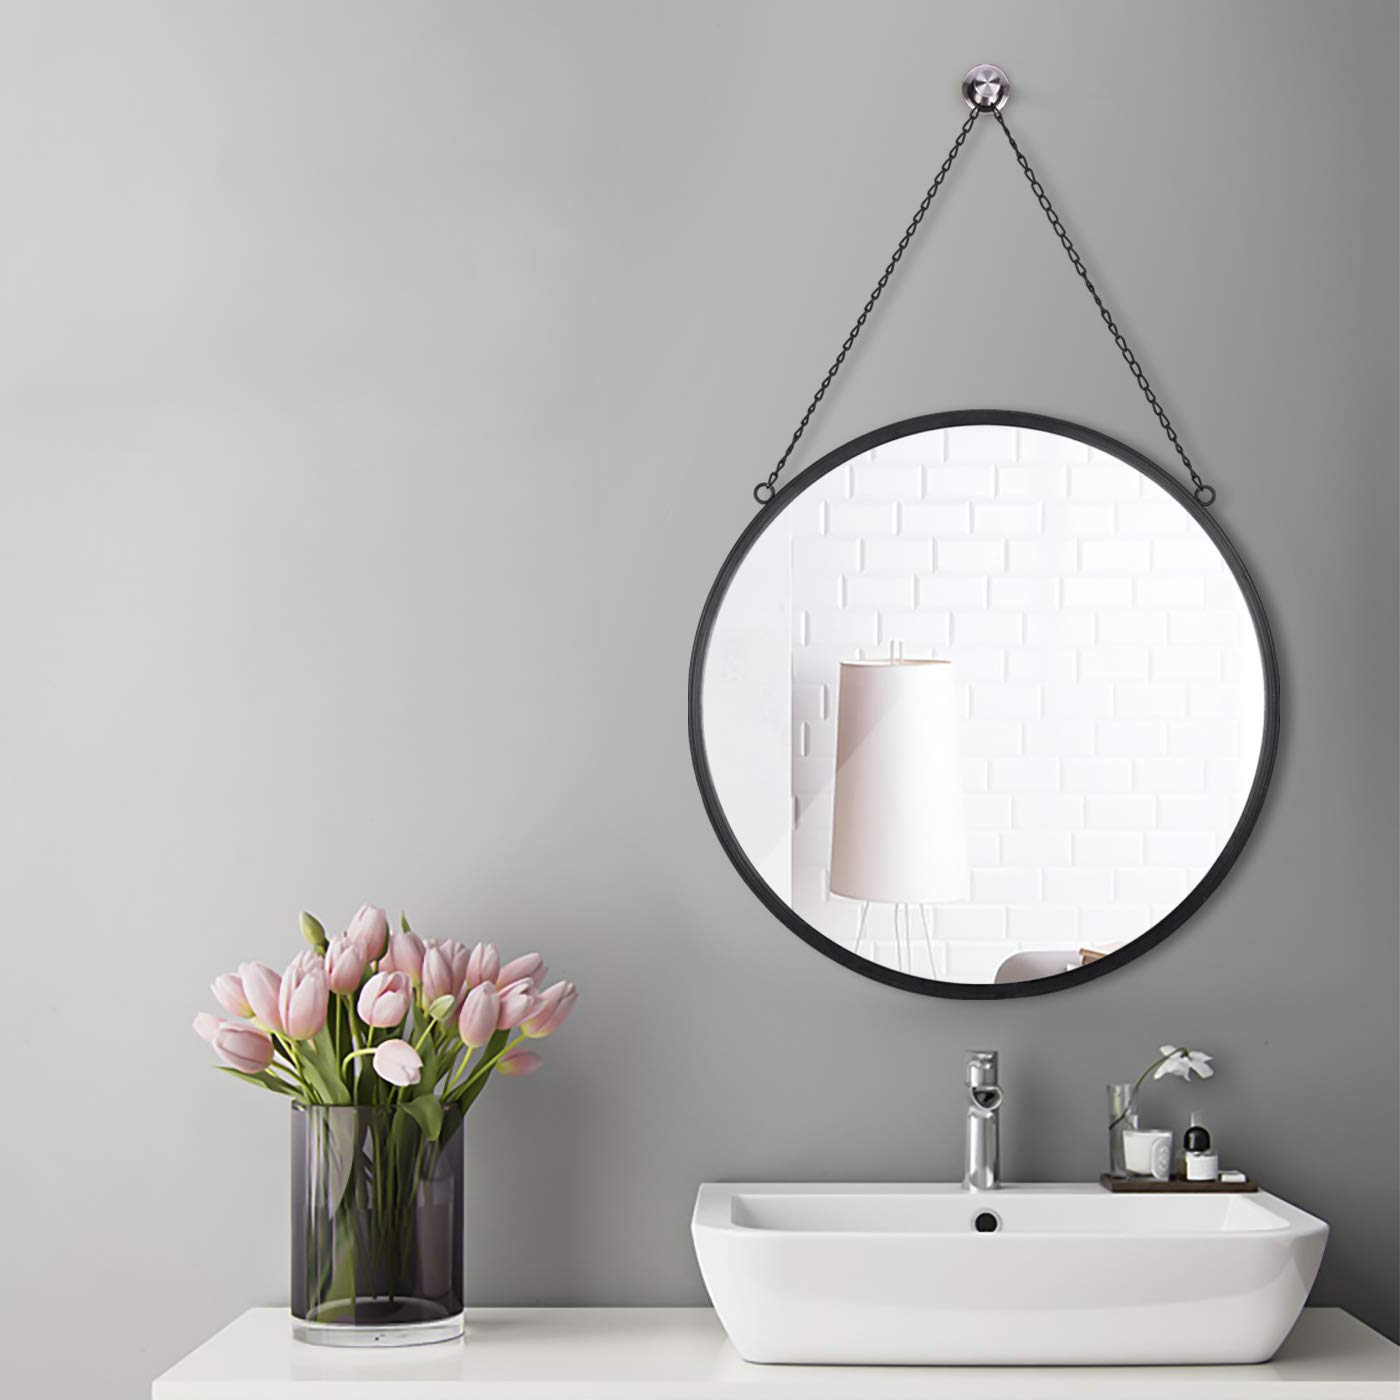 "Fashionable Standard Wall Mirrors With Regard To Plinrise Round Wall Mirror, Modern Metal Framed Mirror, Decorative Hanging Vanity Mirror For Bedroom, Bathroom And Living Room, Size 20"", Black (View 12 of 20)"